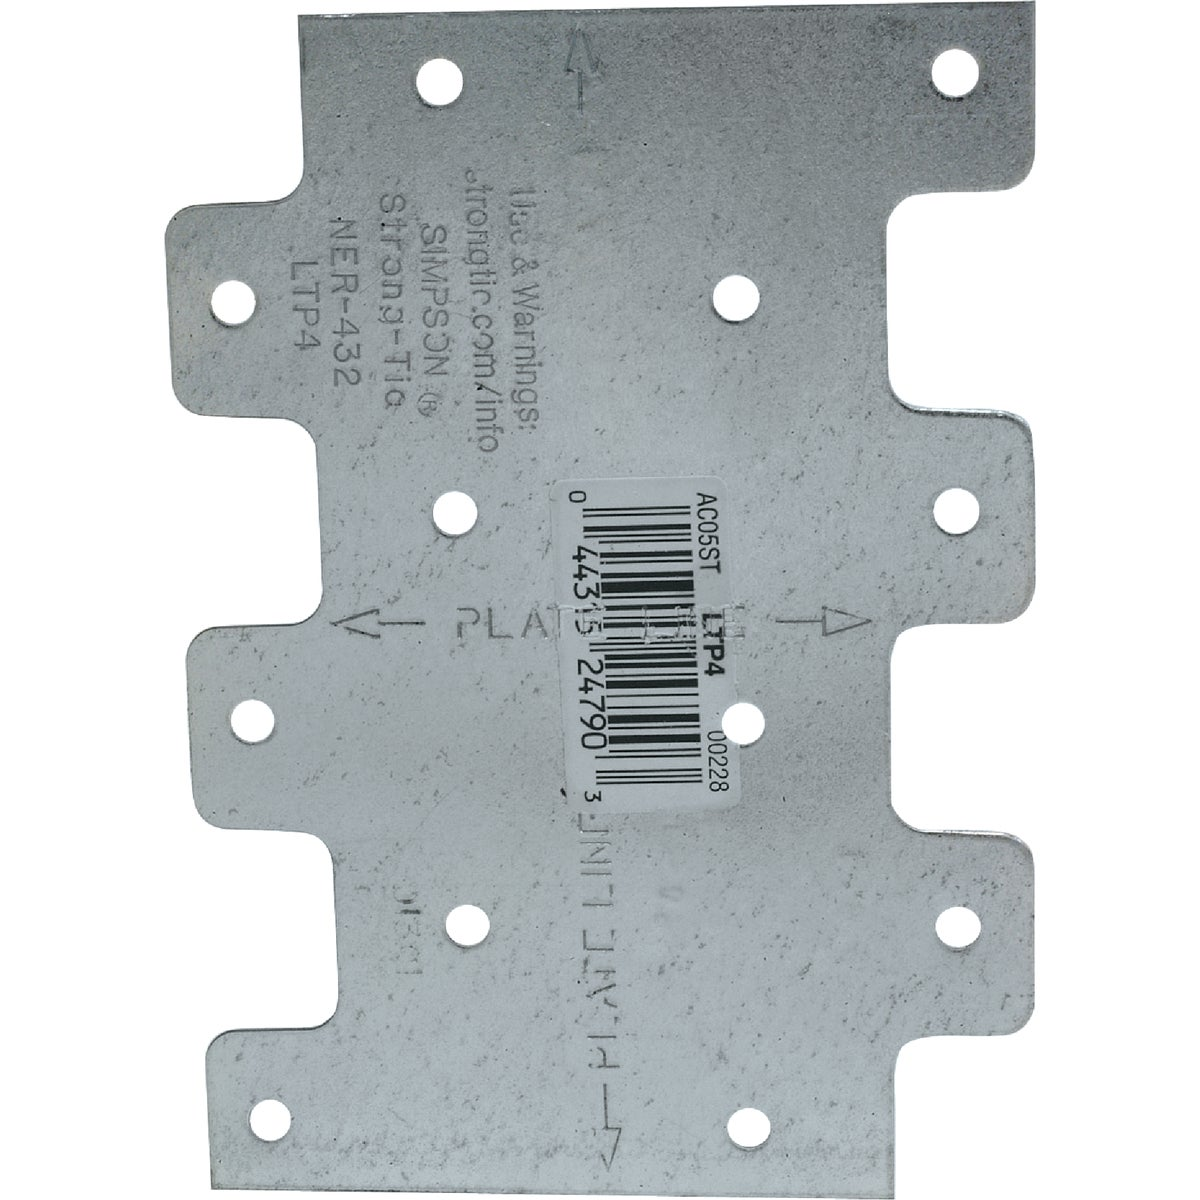 LATERAL TIE PLATE - LTP4 by Simpson Strong Tie